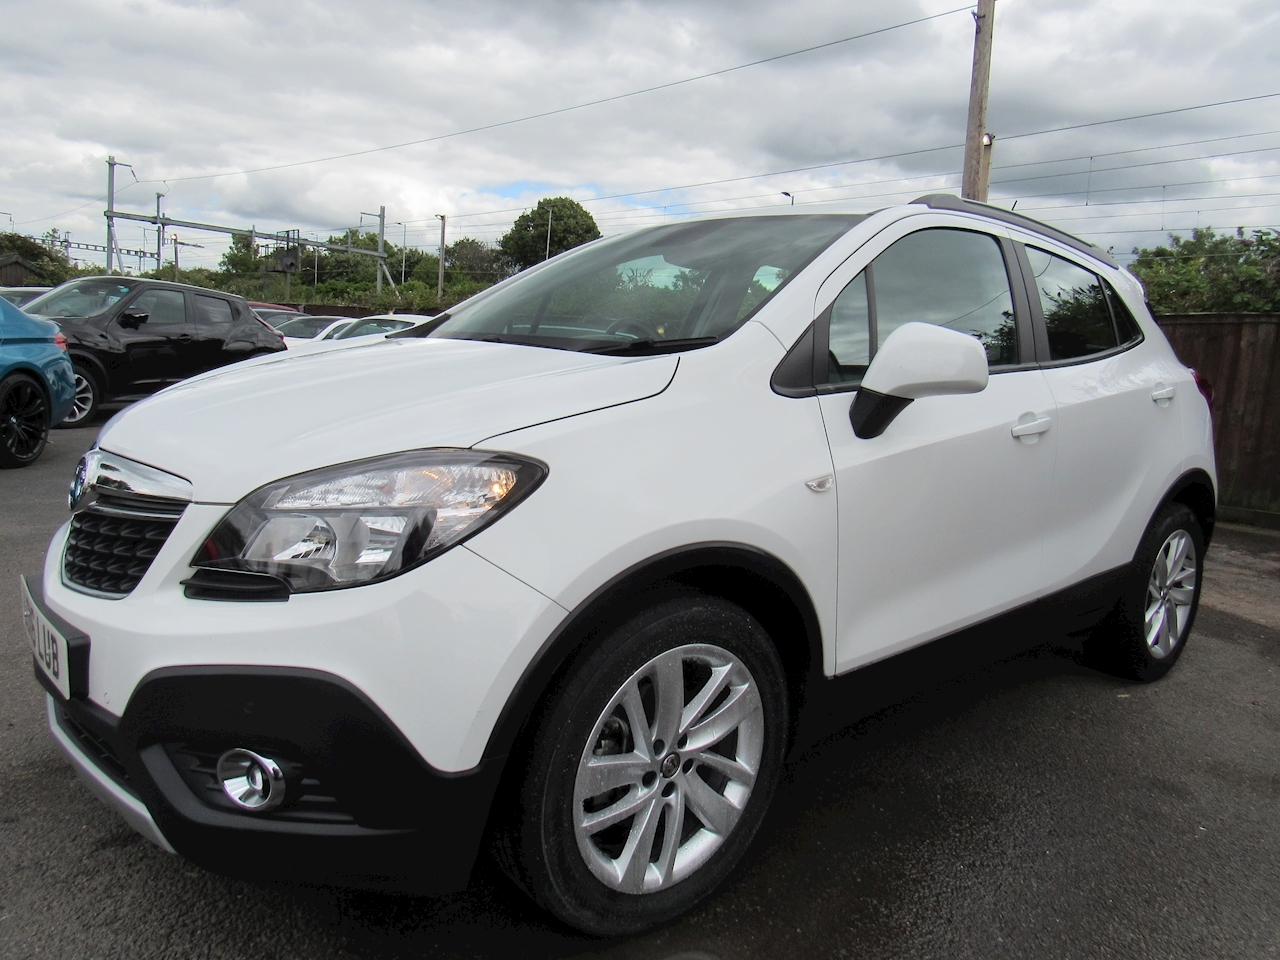 Vauxhall Mokka Exclusiv S/S Hatchback 1.4 Manual Petrol